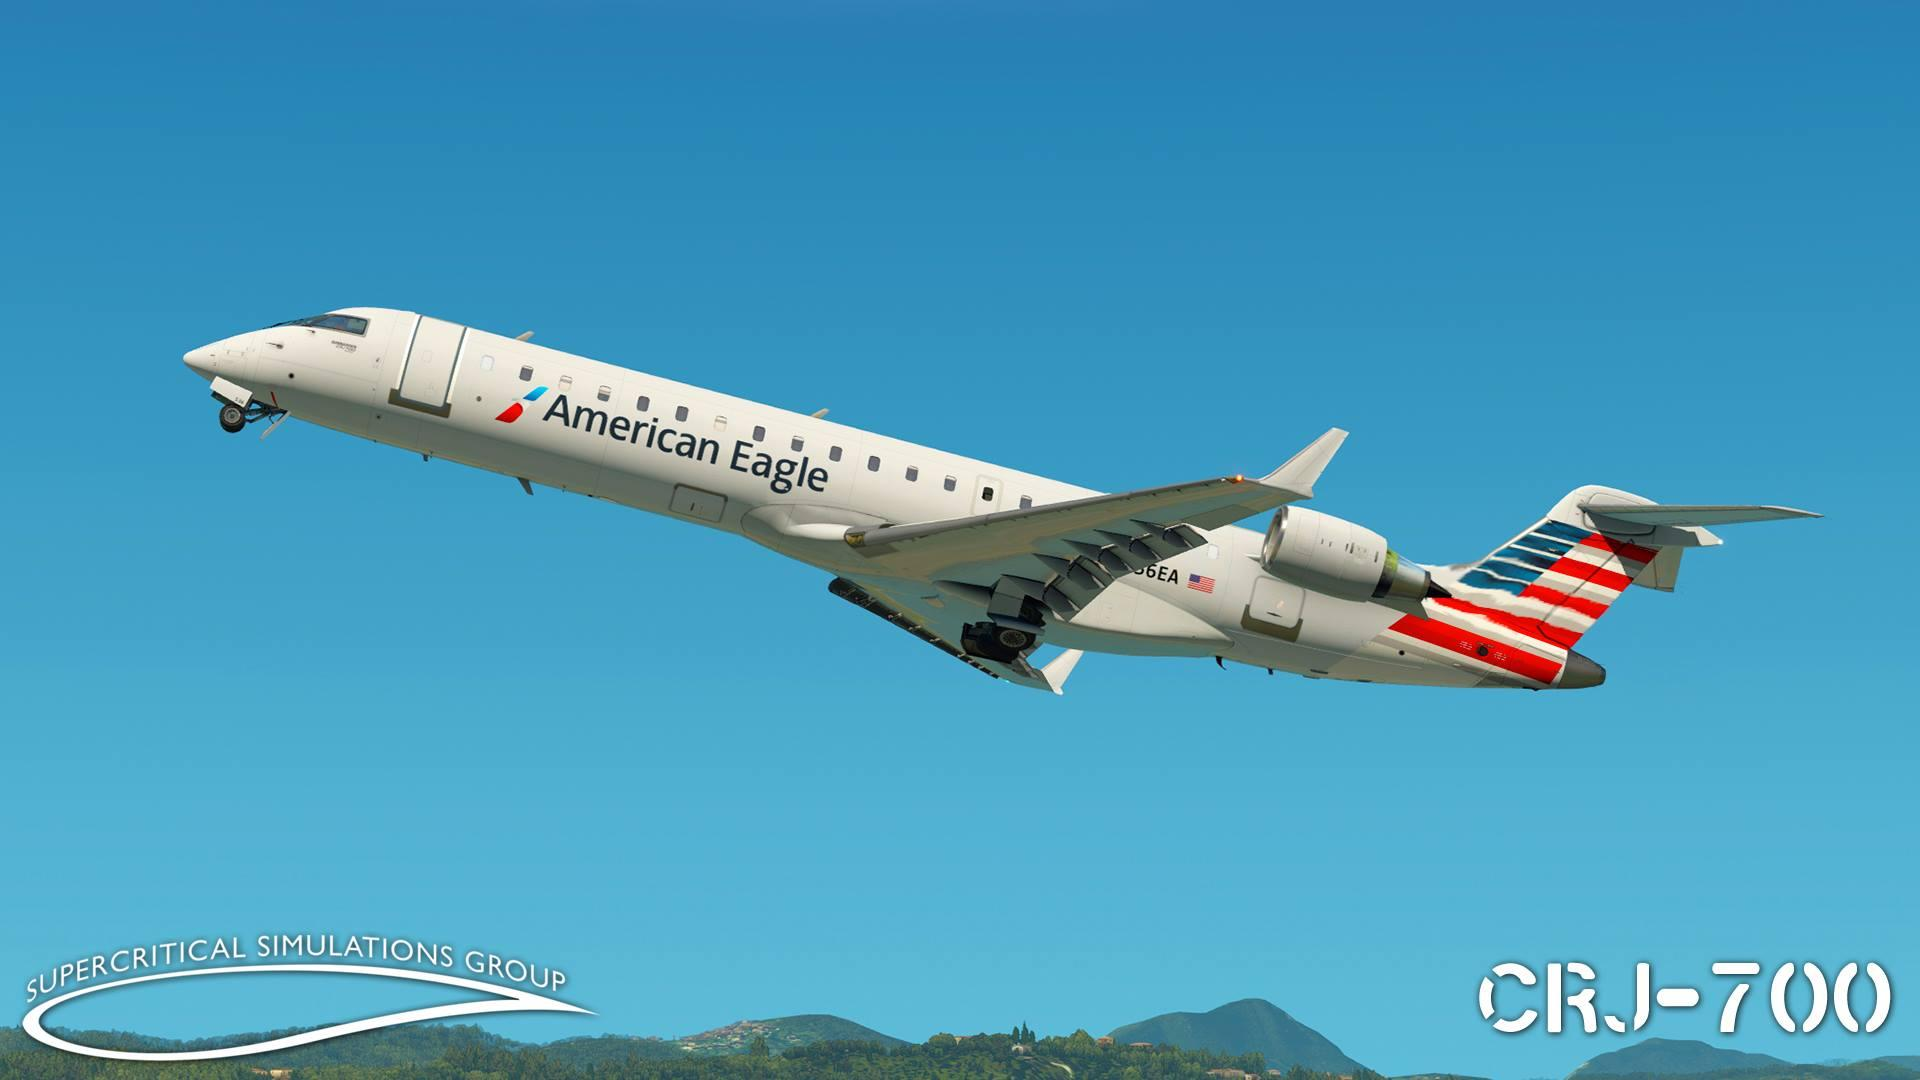 News! - Images! - Updated : SSG show images of their CRJ-700